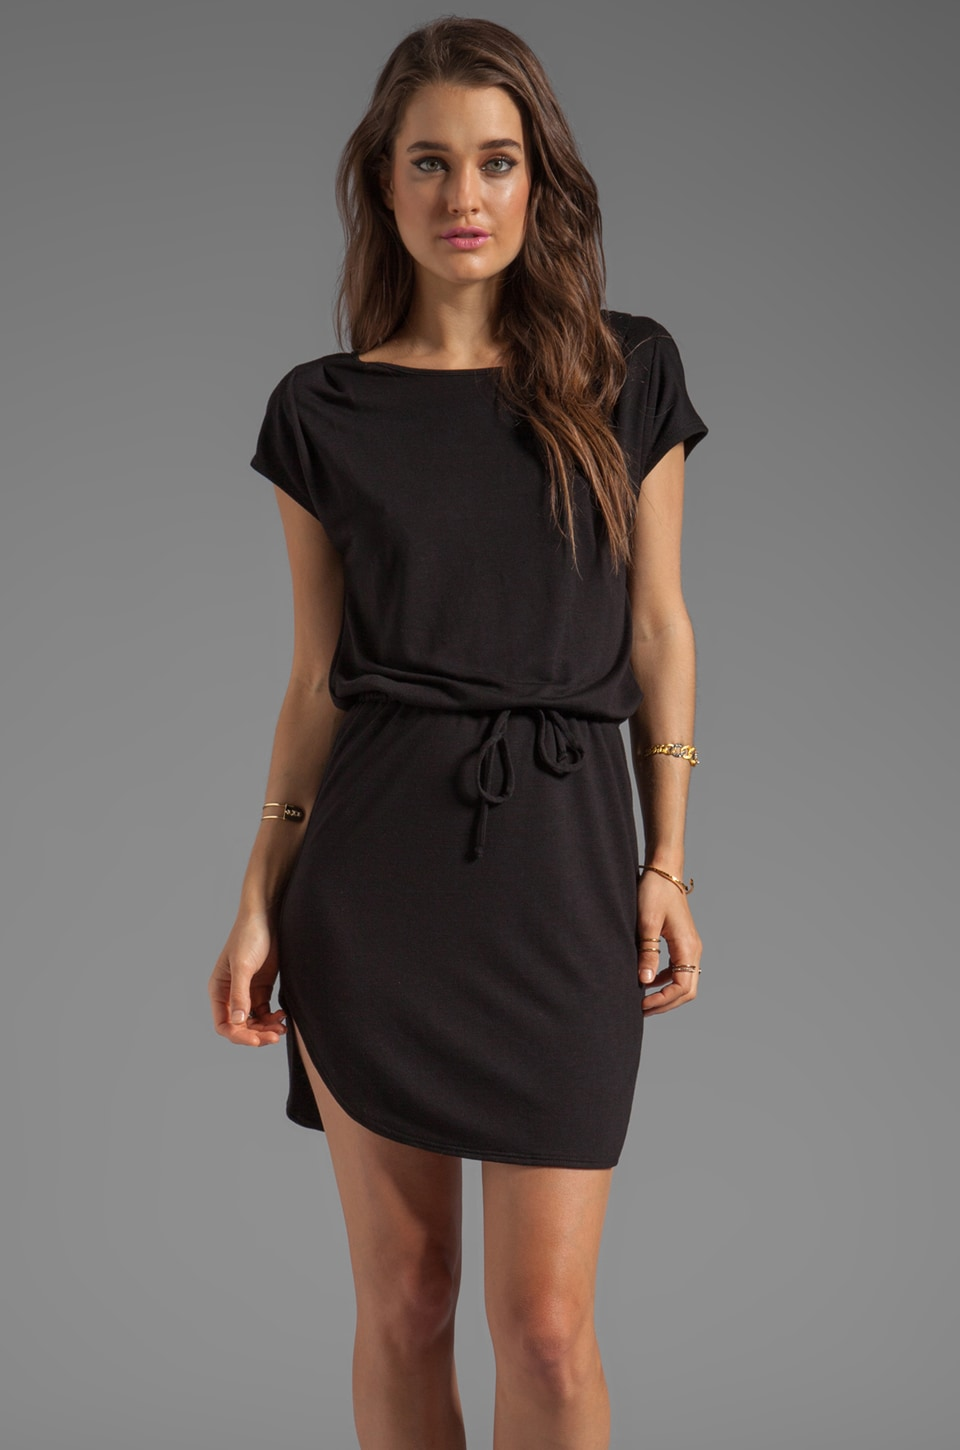 Lanston Open V Back Dress in Black